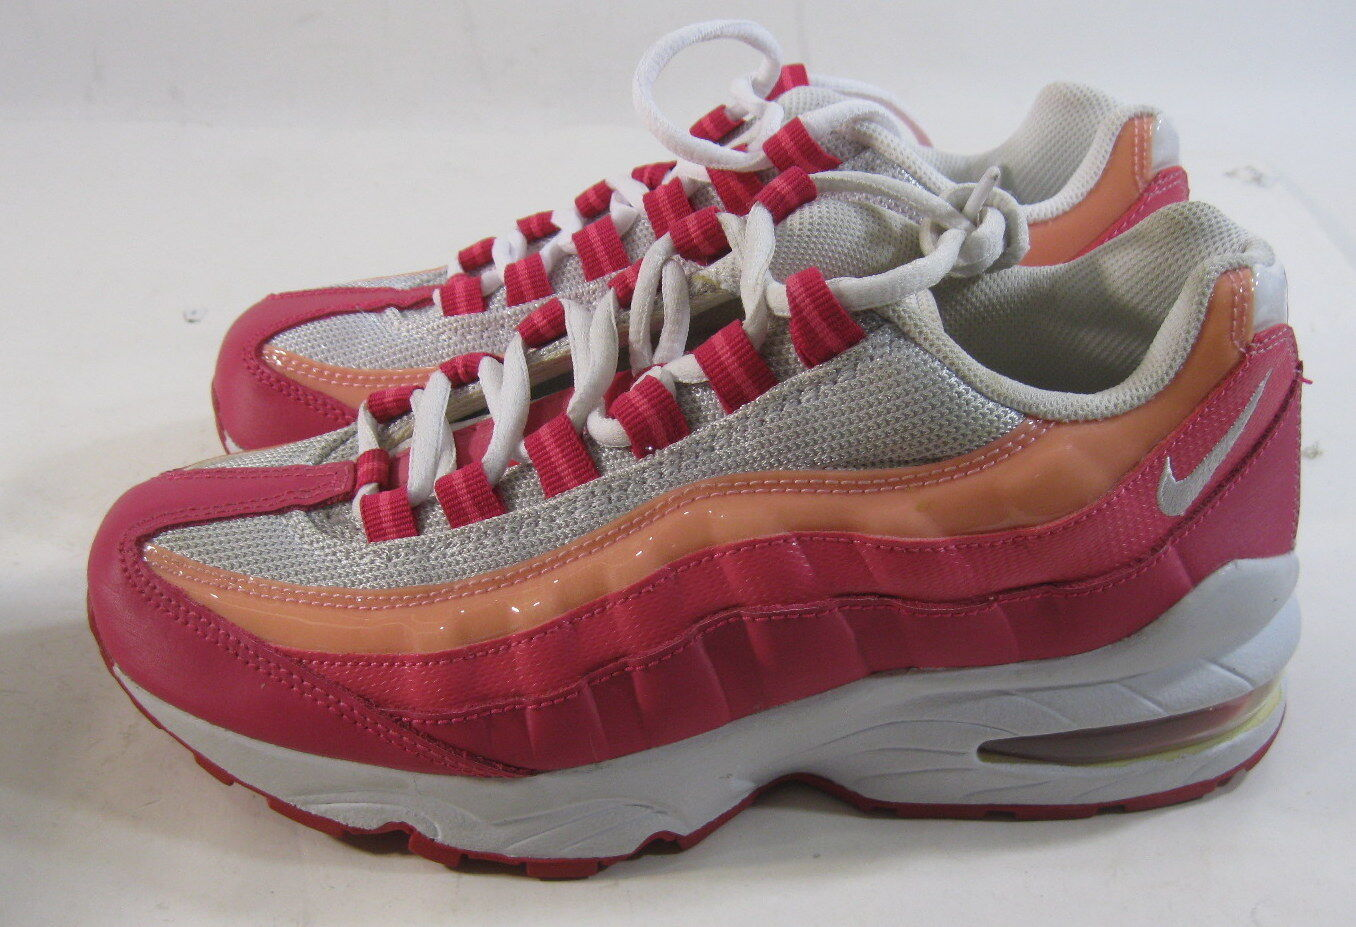 Nike Air Max '95 Le (Gs) Girls Running Shoes 310830-166 White/-Cherry Size 5Y